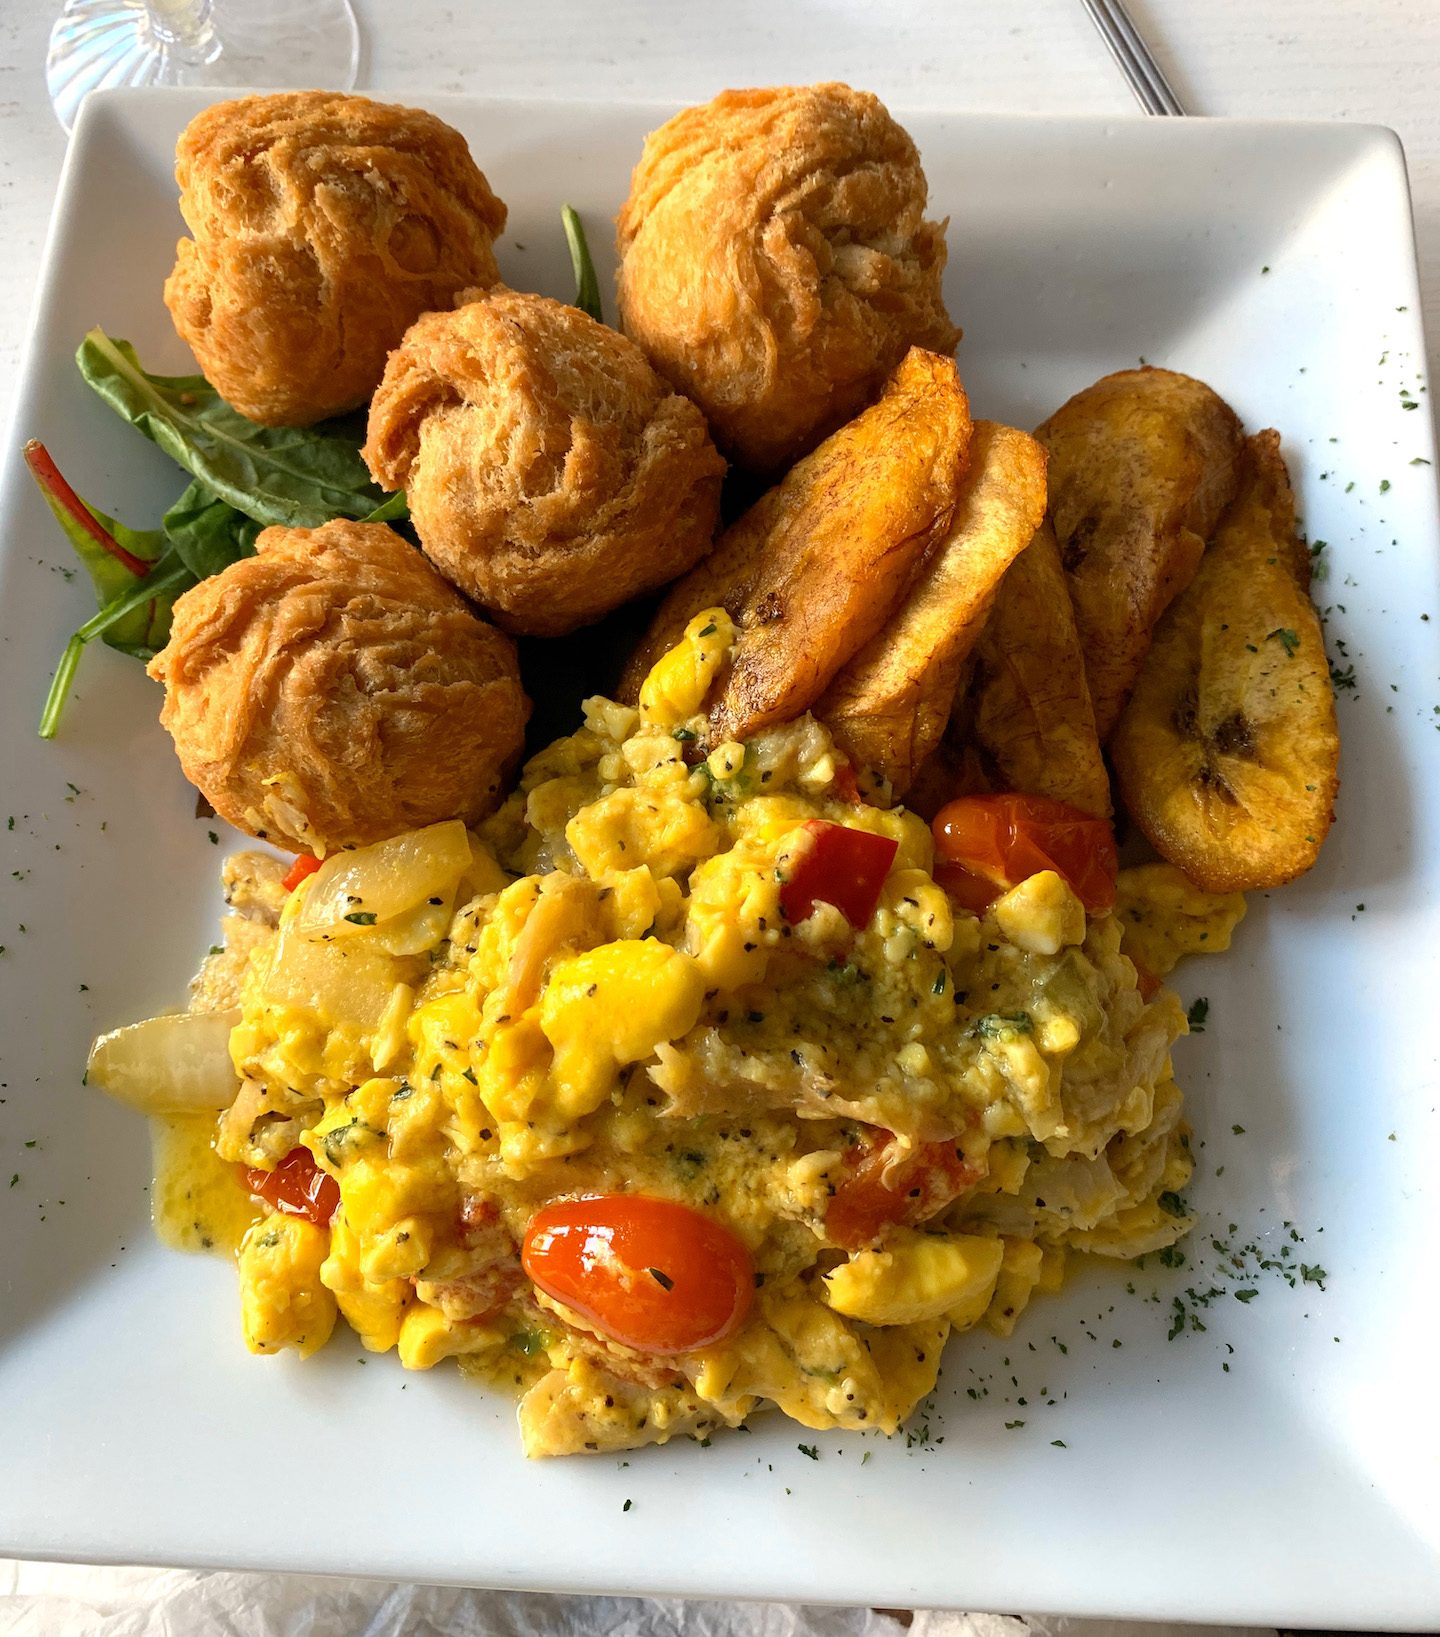 Suite 704 Brunch Ackee & Saltfish